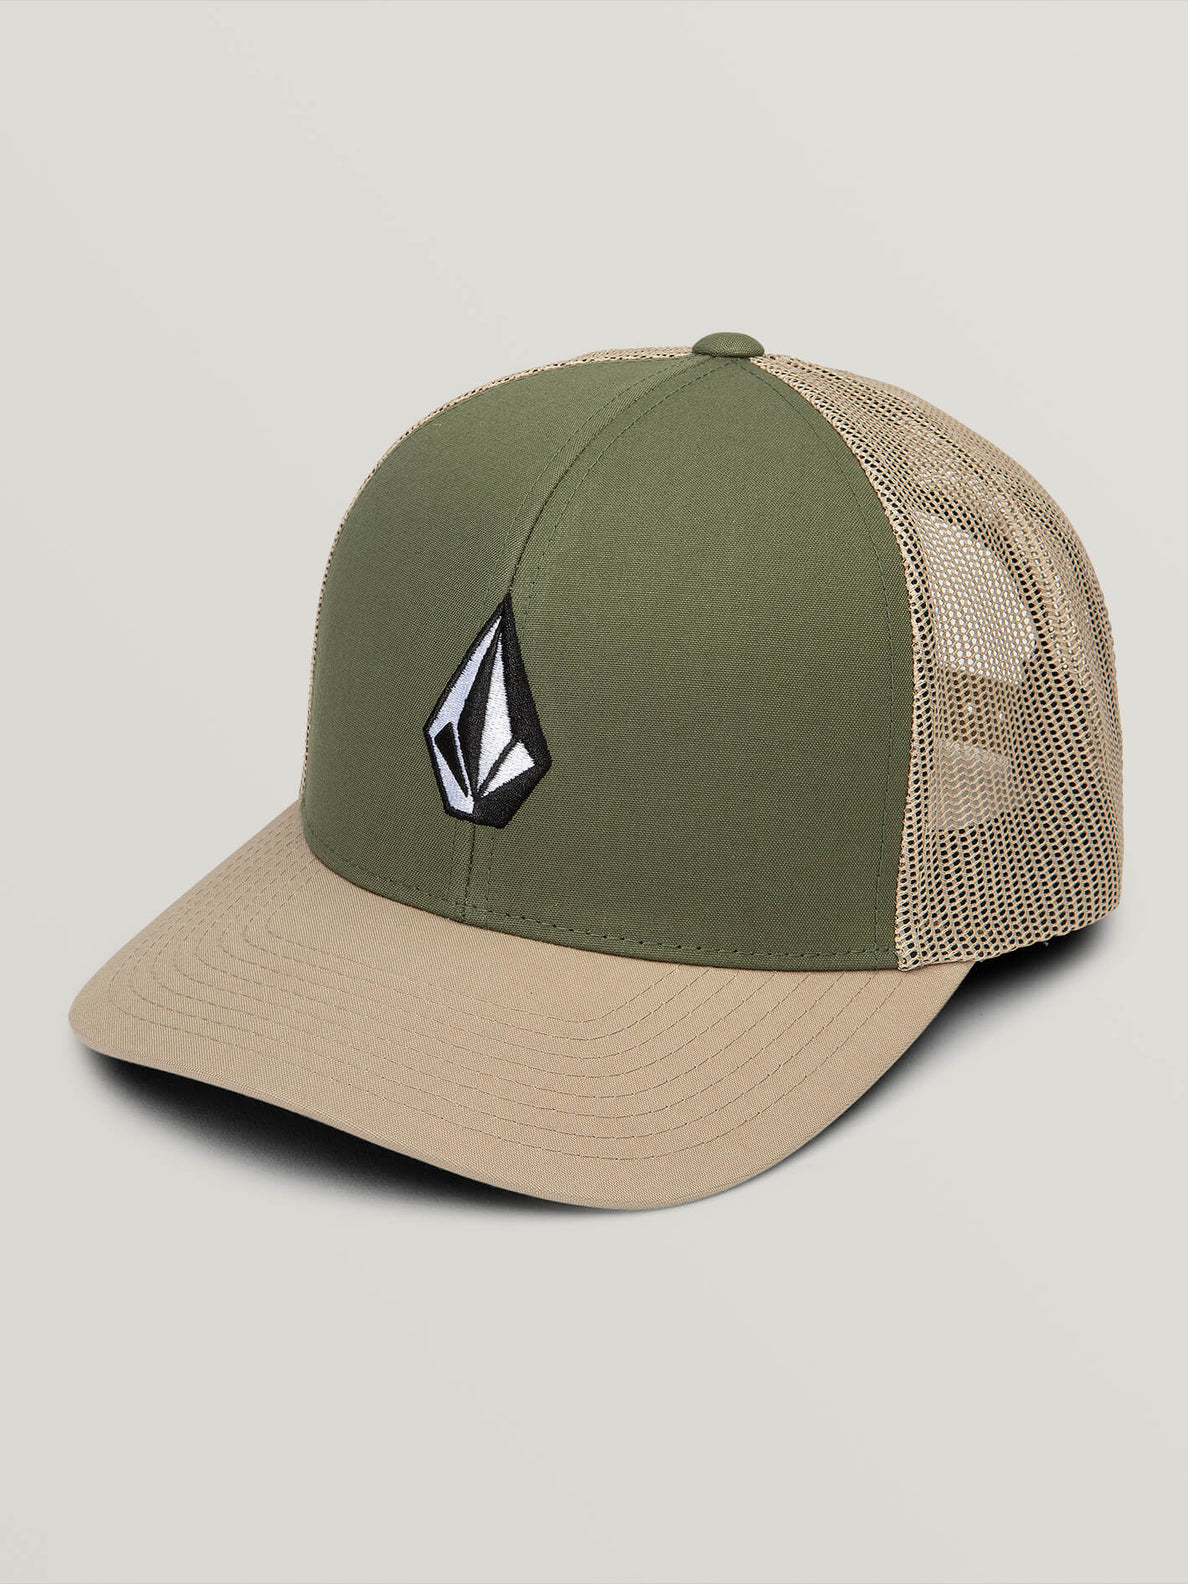 new arrival 24e91 fbf27 Full Stone Cheese Hat In Dark Olive, ...